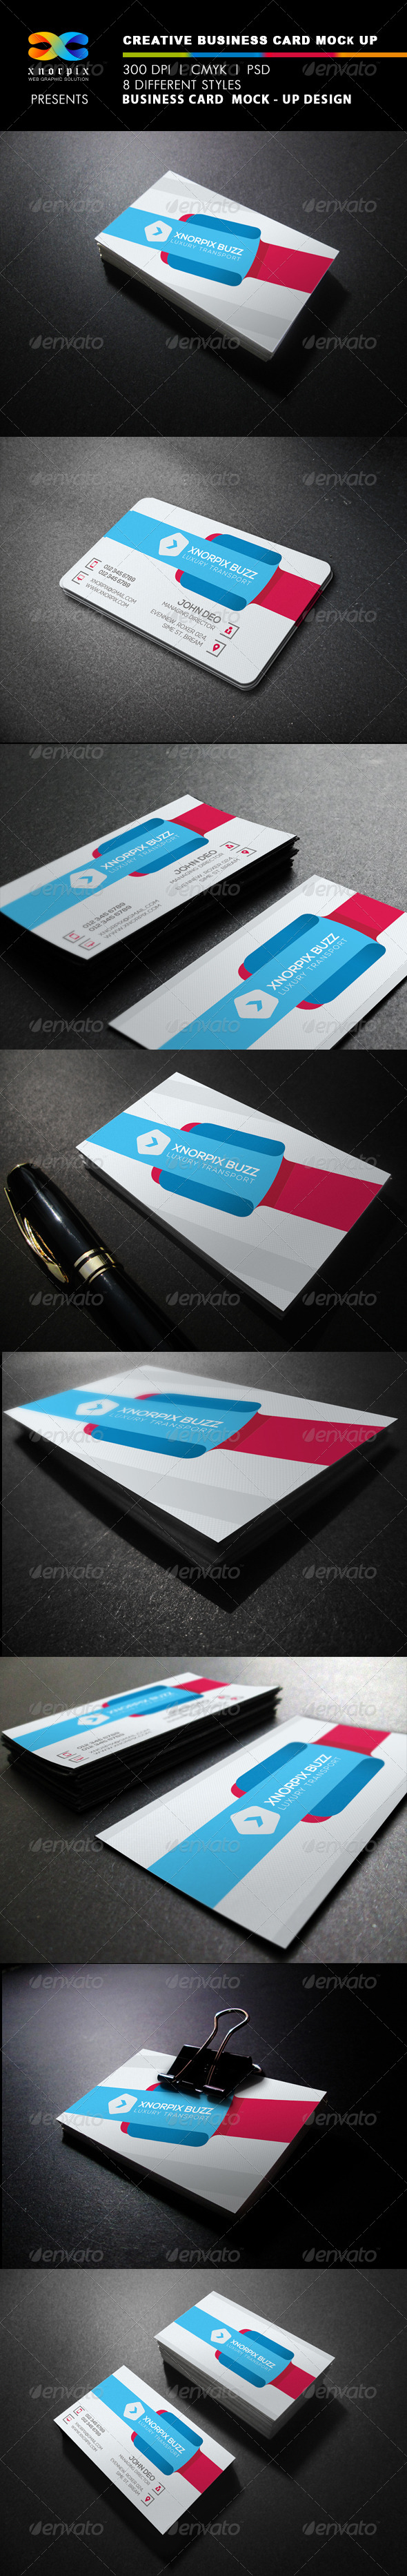 GraphicRiver Realistic Business Card Mock up 7824989